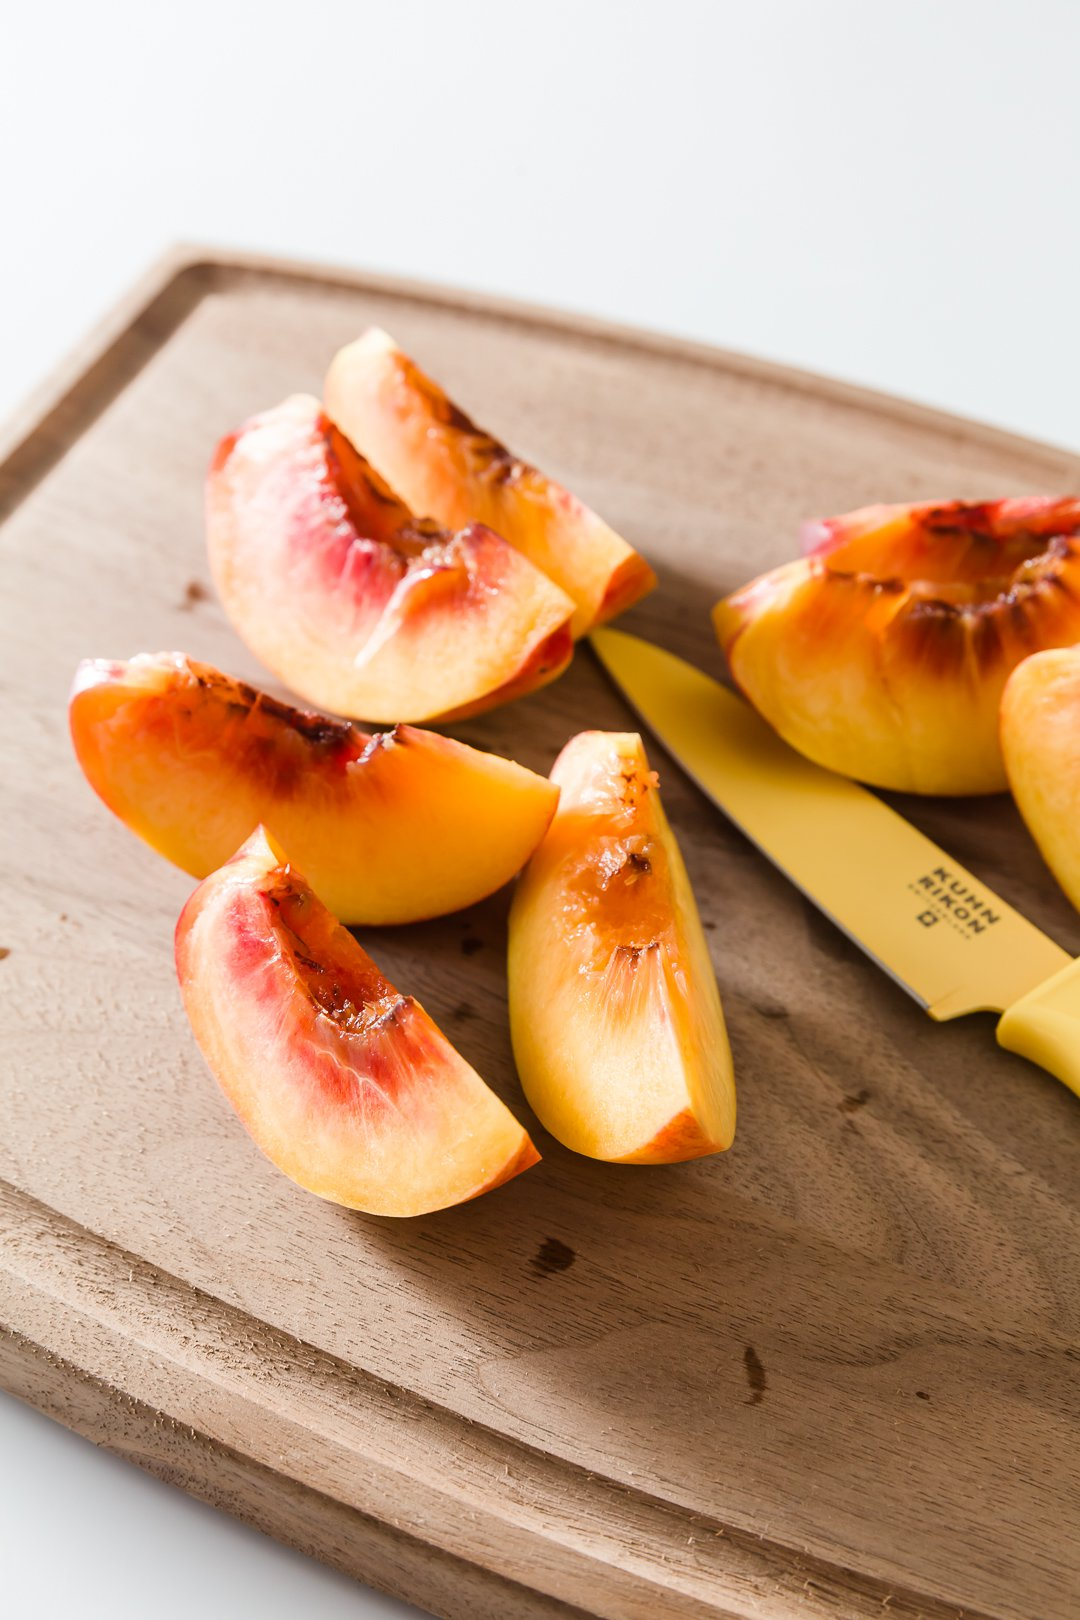 a cutting board with sliced peaches and a knife